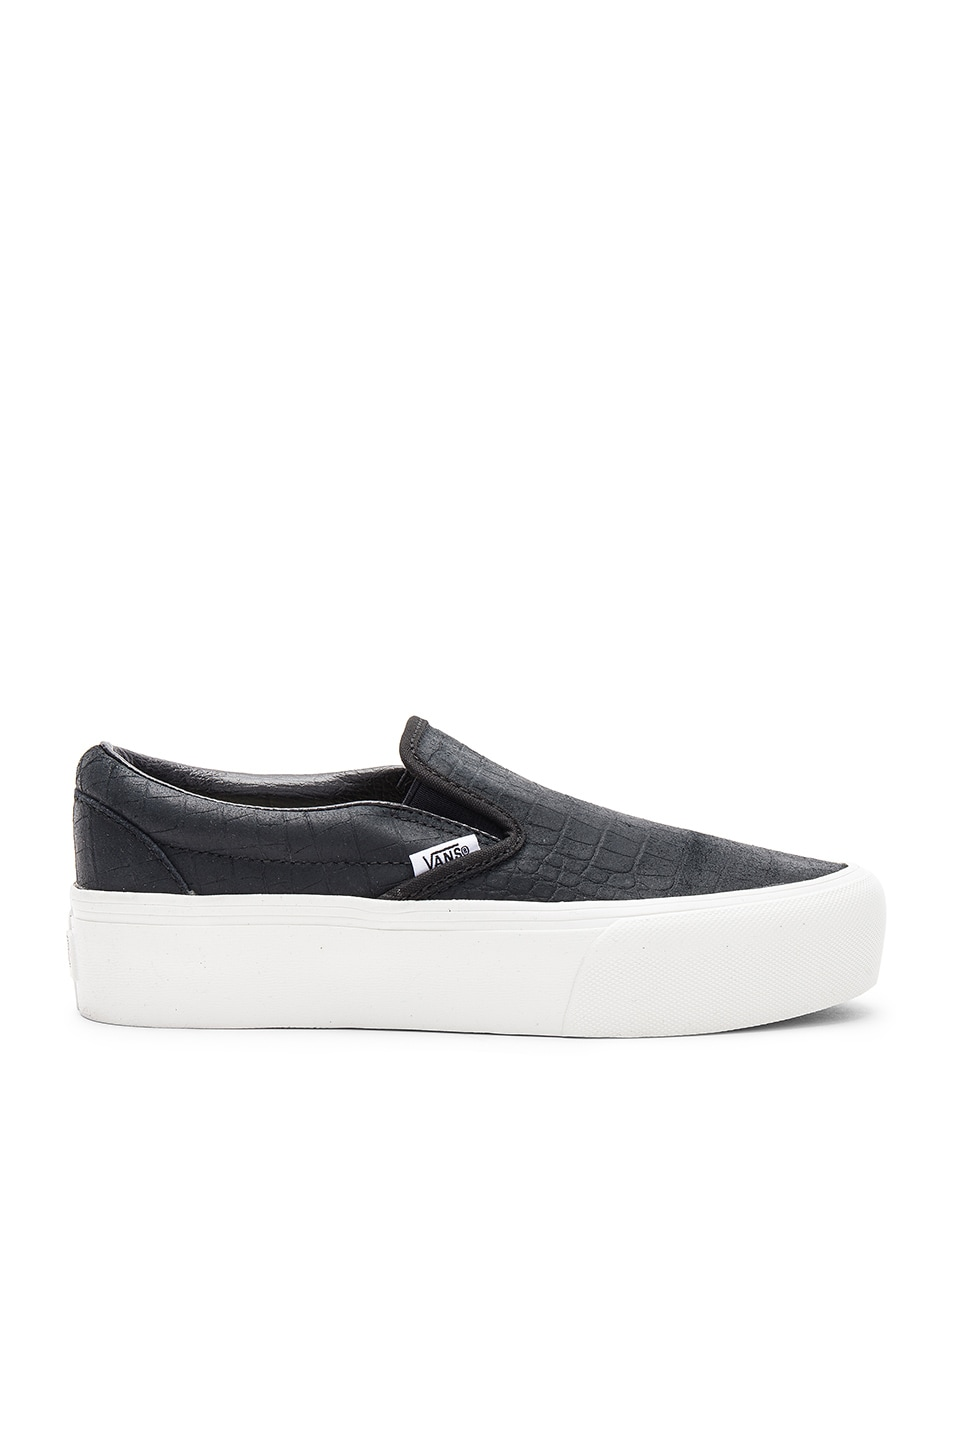 Vans Embossed Classic Slip-On Platform in Black & Blanc De Blanc ...